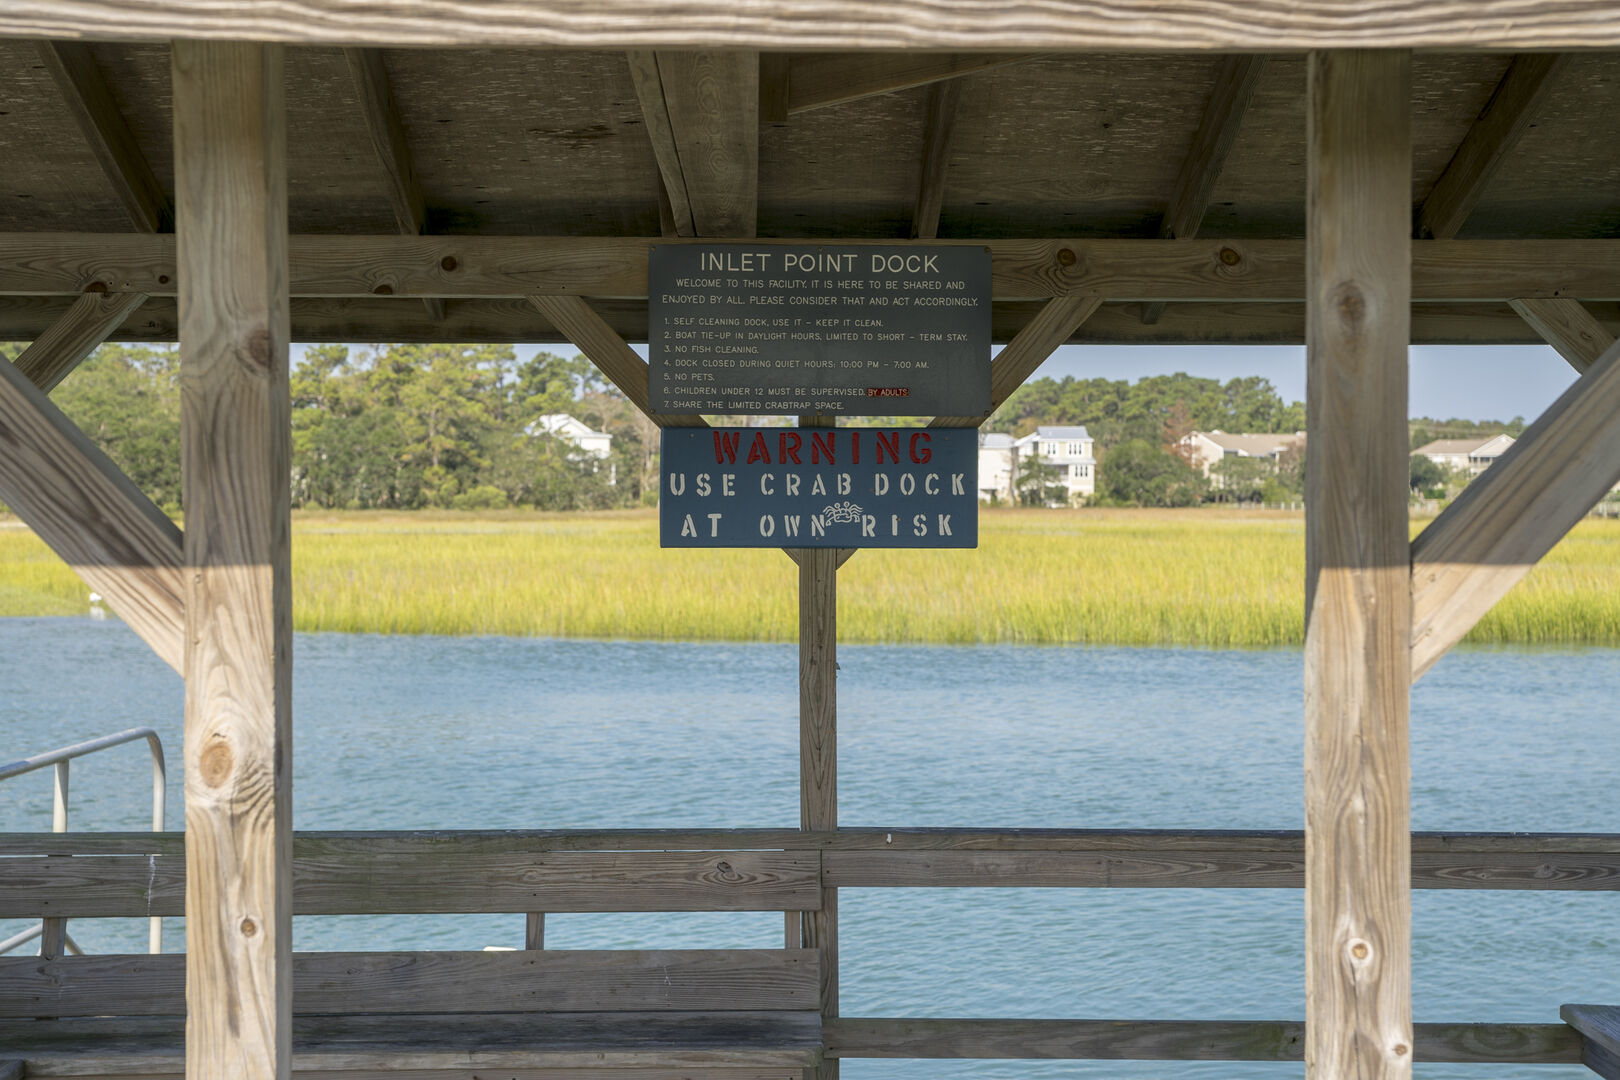 Community Crab Dock - Inlet Point